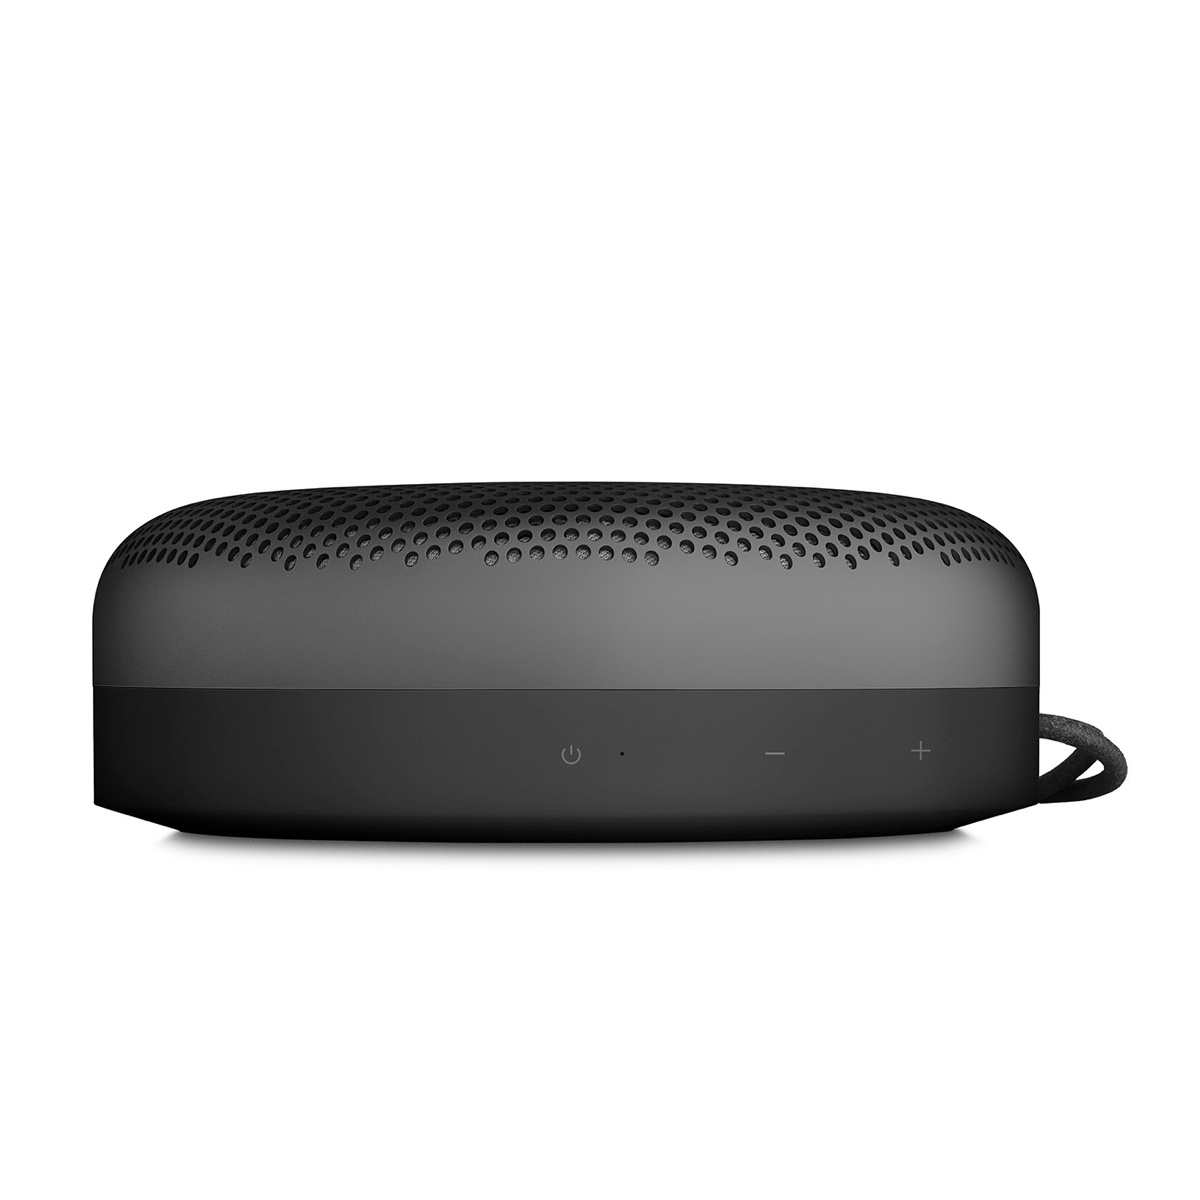 Bang & Olufsen Beoplay A1 - Portable Bluetooth Speaker - AVStore.in